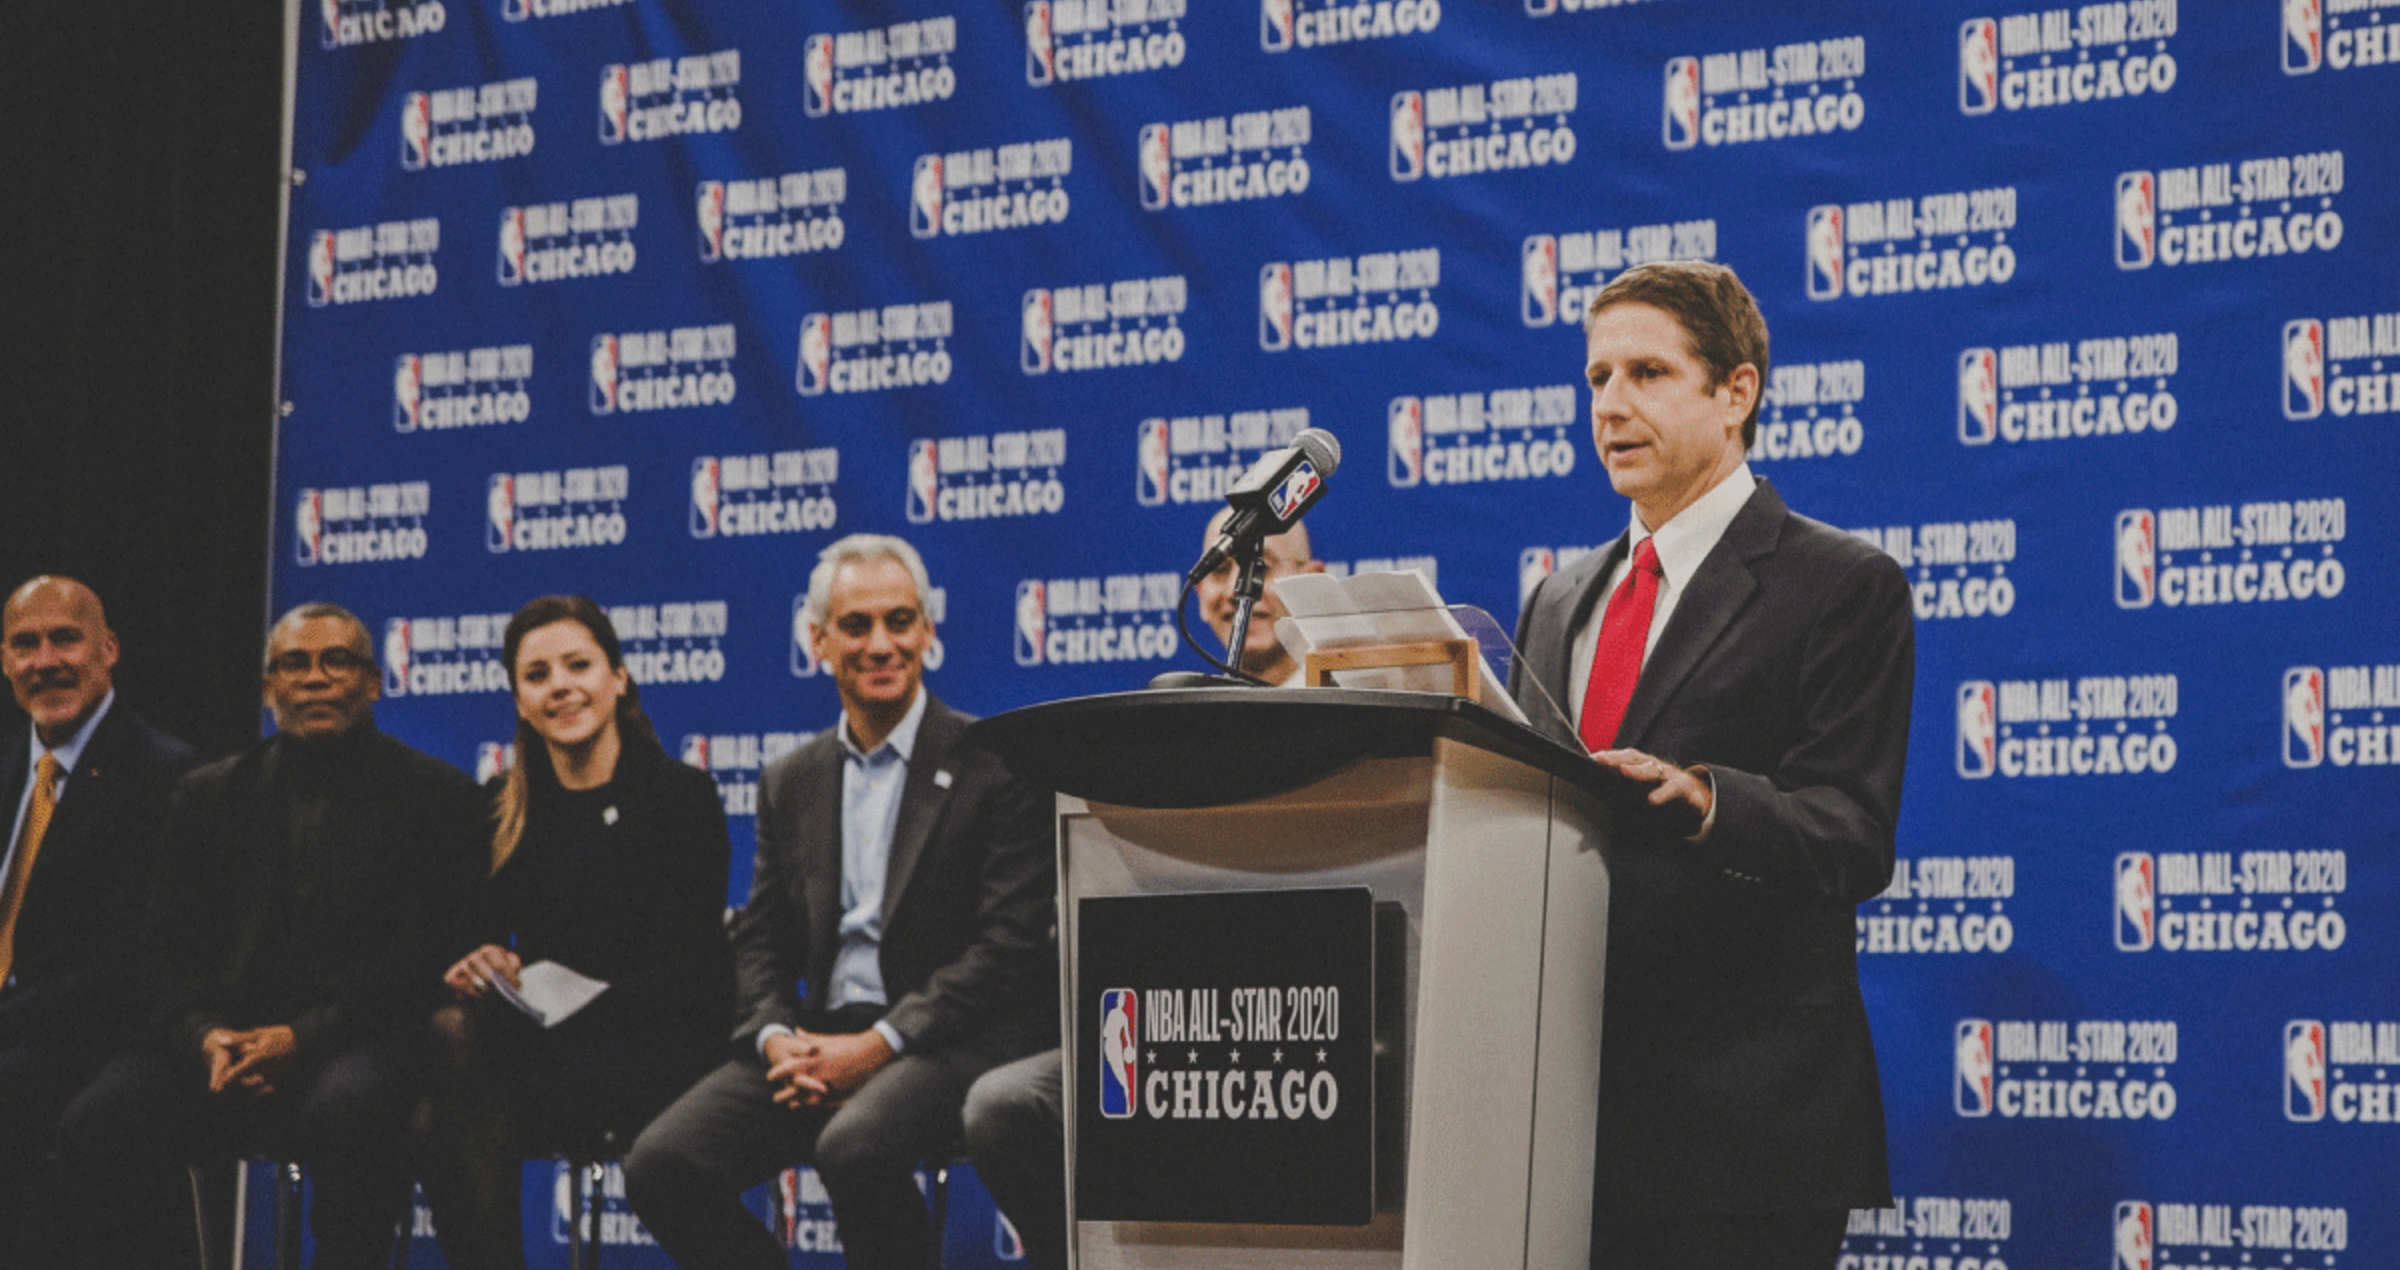 MIchael Reinsdorf announces 2020 NBA All-Star Game coming to Chicago